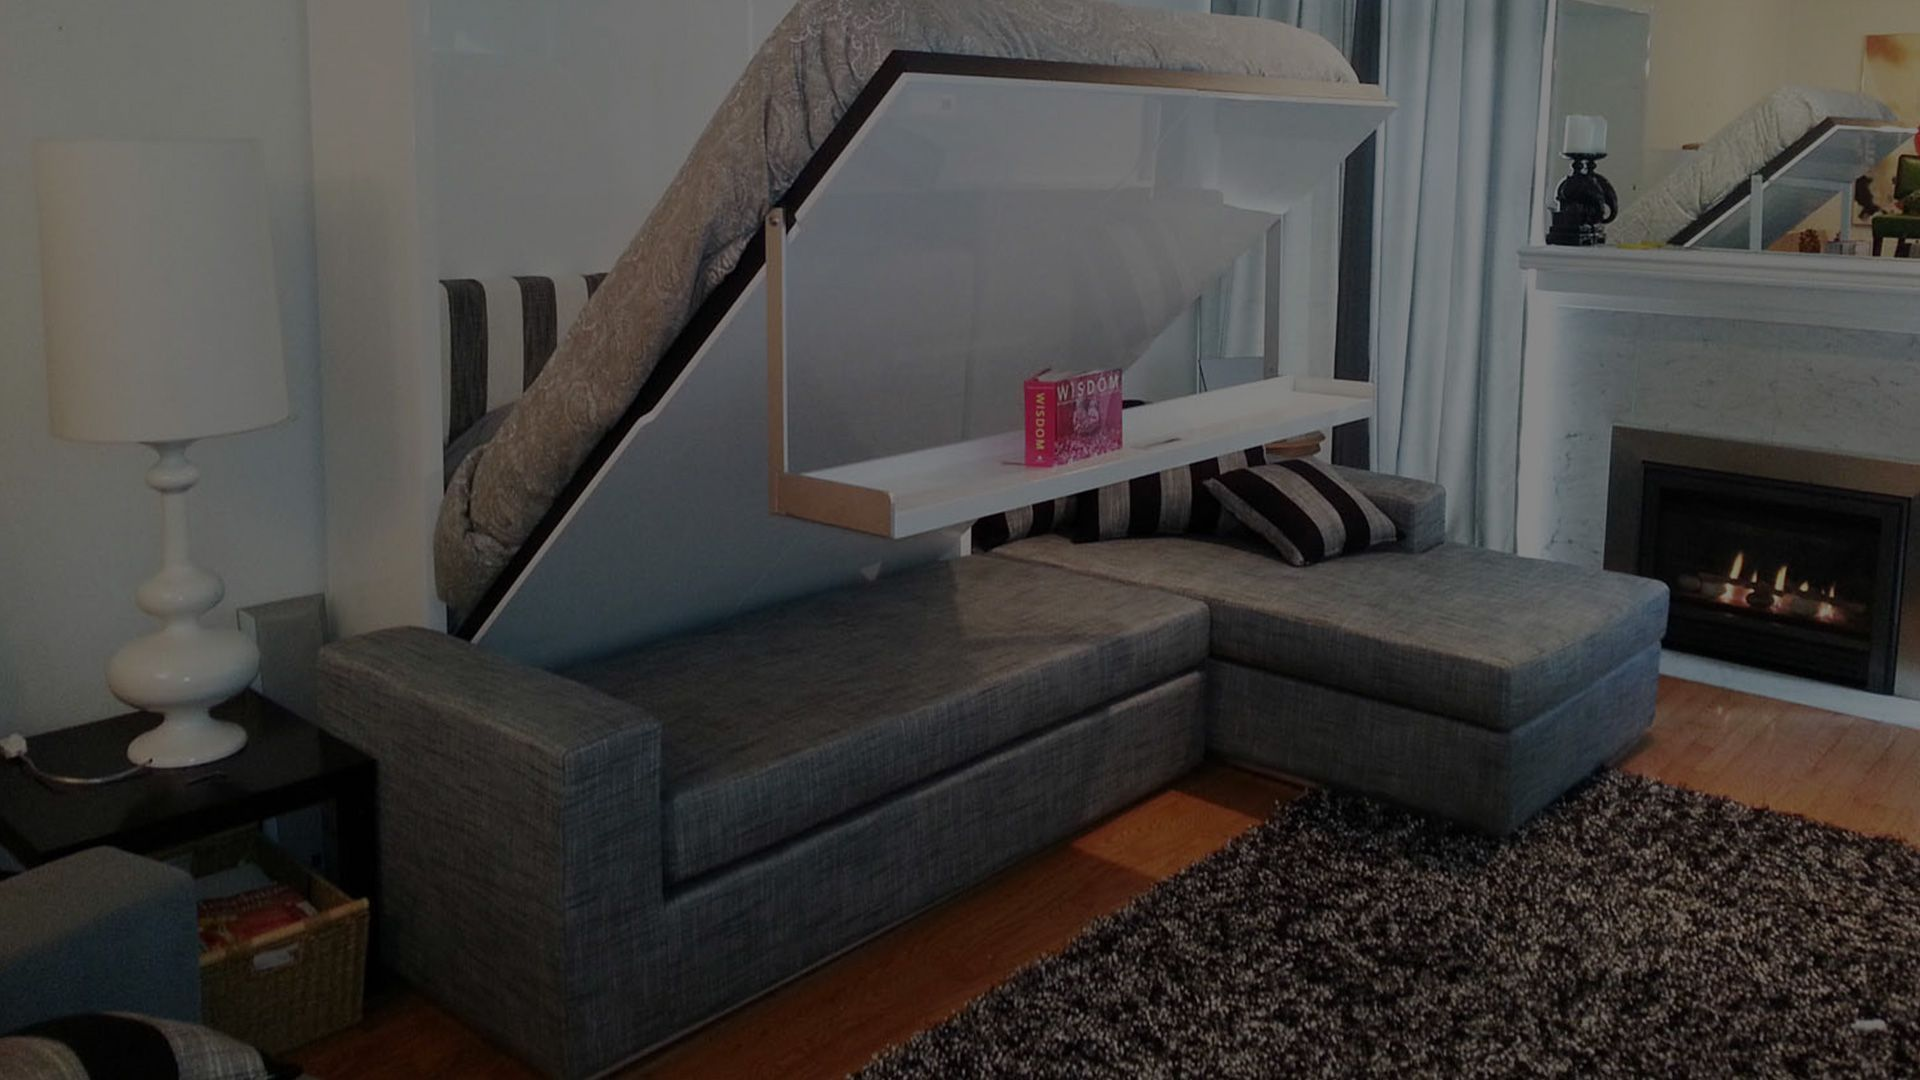 Space Saving Hidden Beds add a room to your home through